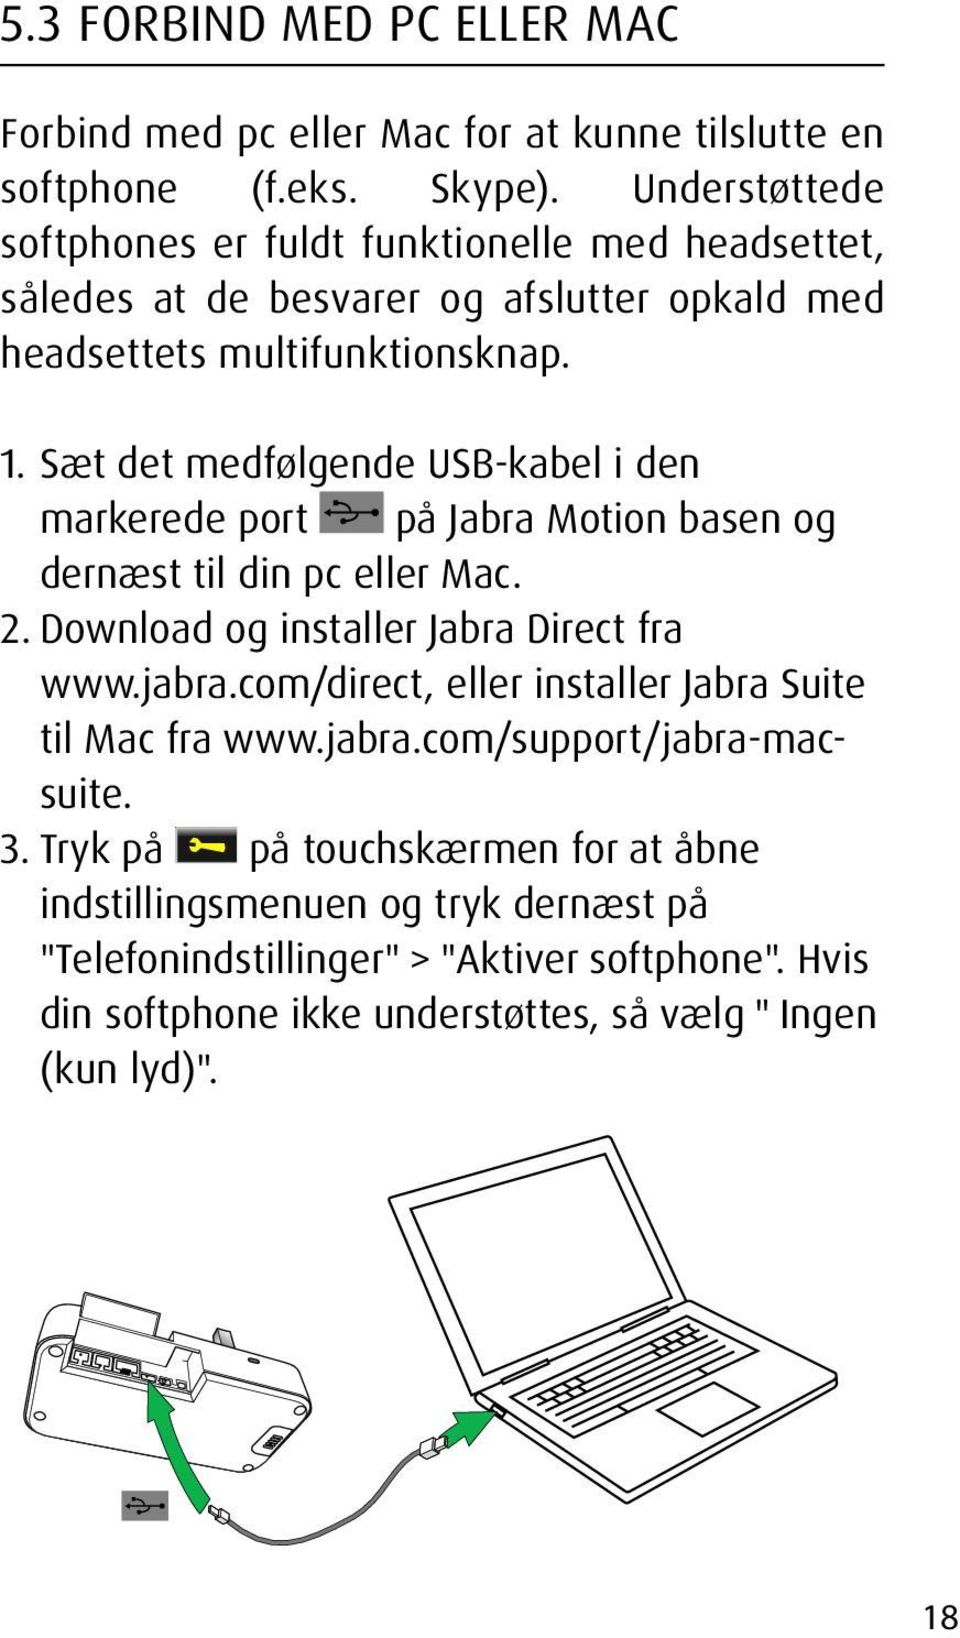 Sæt det medfølgende USB-kabel i den markerede port på Jabra Motion basen og dernæst til din pc eller Mac. 2. Download og installer Jabra Direct fra www.jabra.